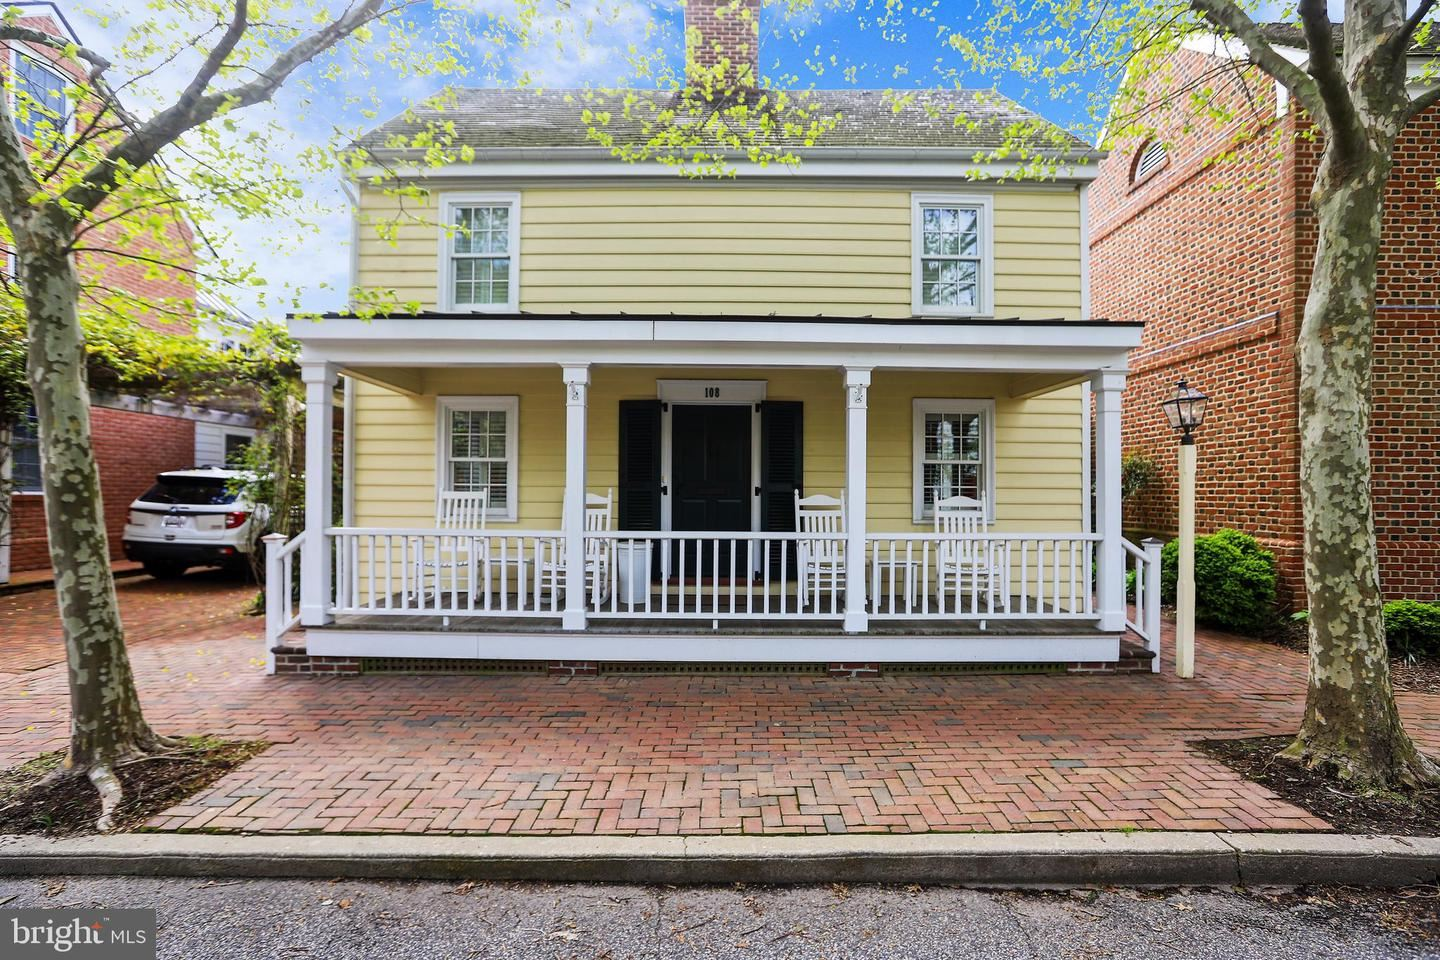 Photo of 108 CANNON ST, CHESTERTOWN, MD 21620 (MLS # MDKE116500)